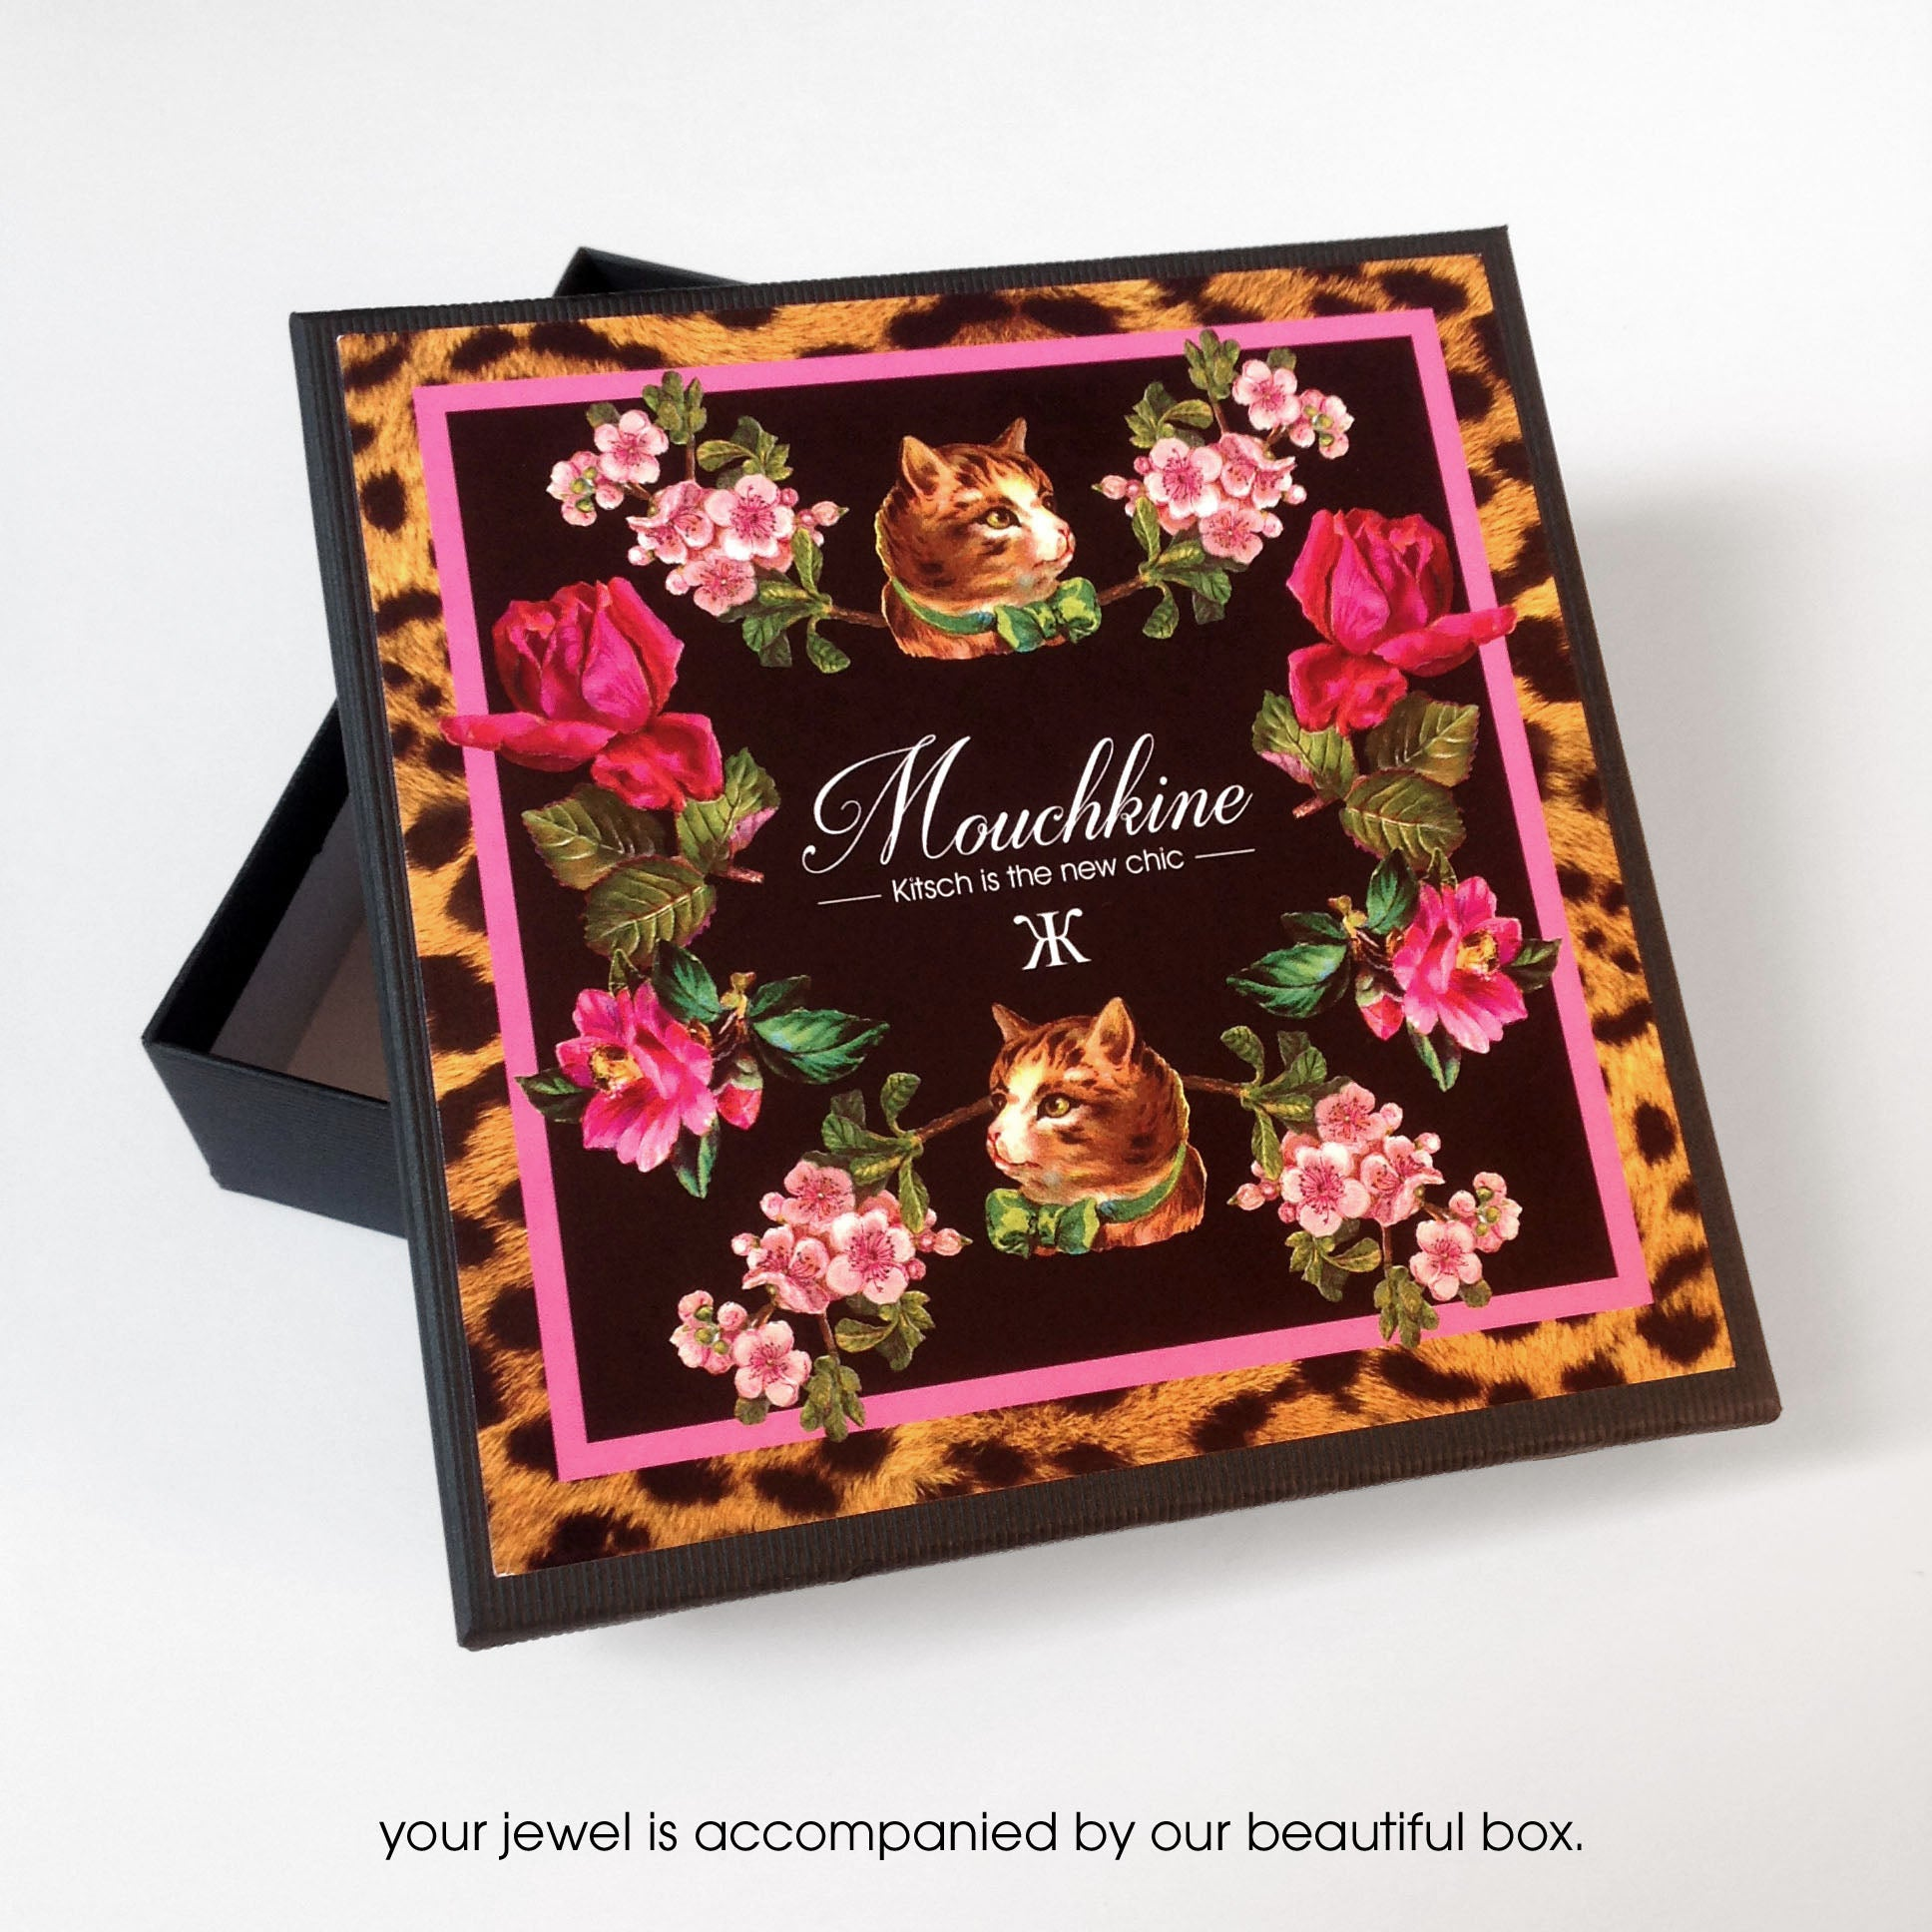 mouchkine jewelry fashion luxury and chic packaging